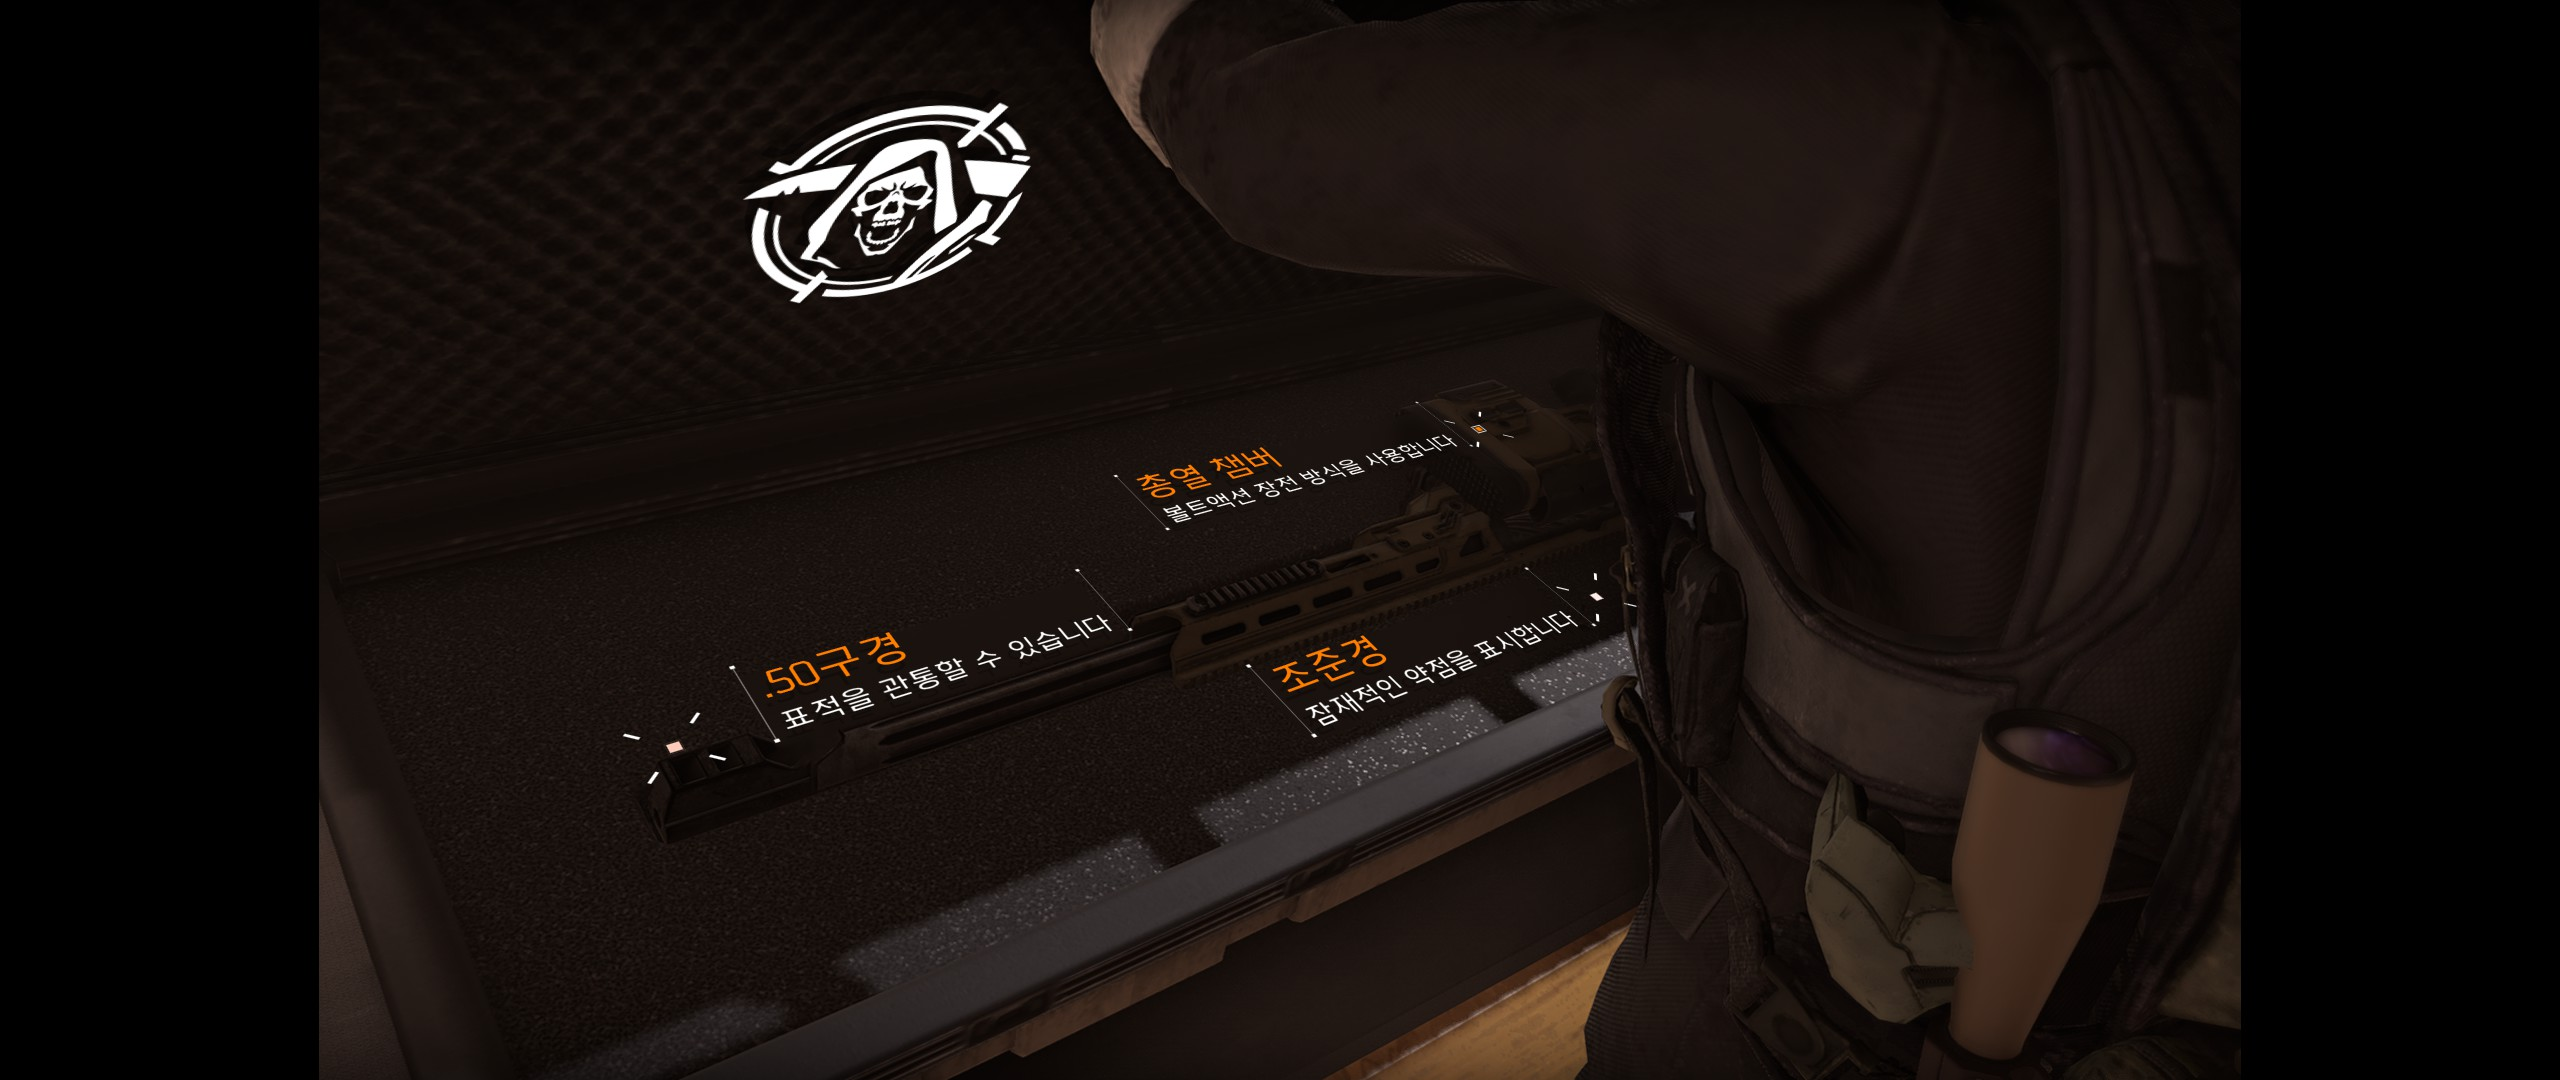 Tom Clancy's The Division® 22019-3-21-19-16-33.jpg